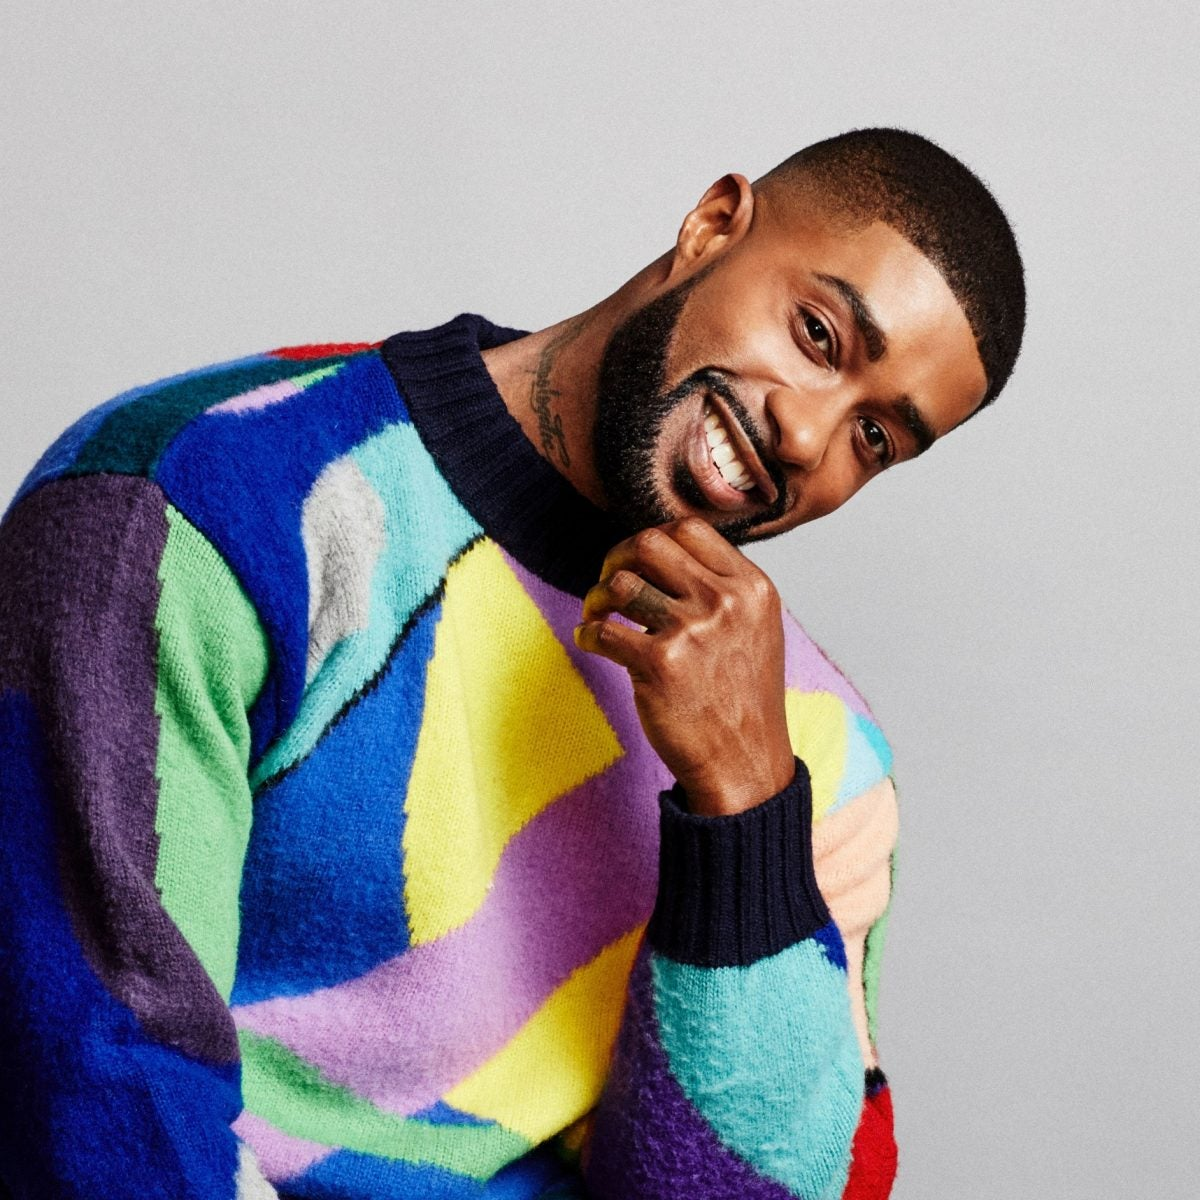 From Homeless To Hollywood Leading Man: 7 Things To Know About Skyh Alvester Black